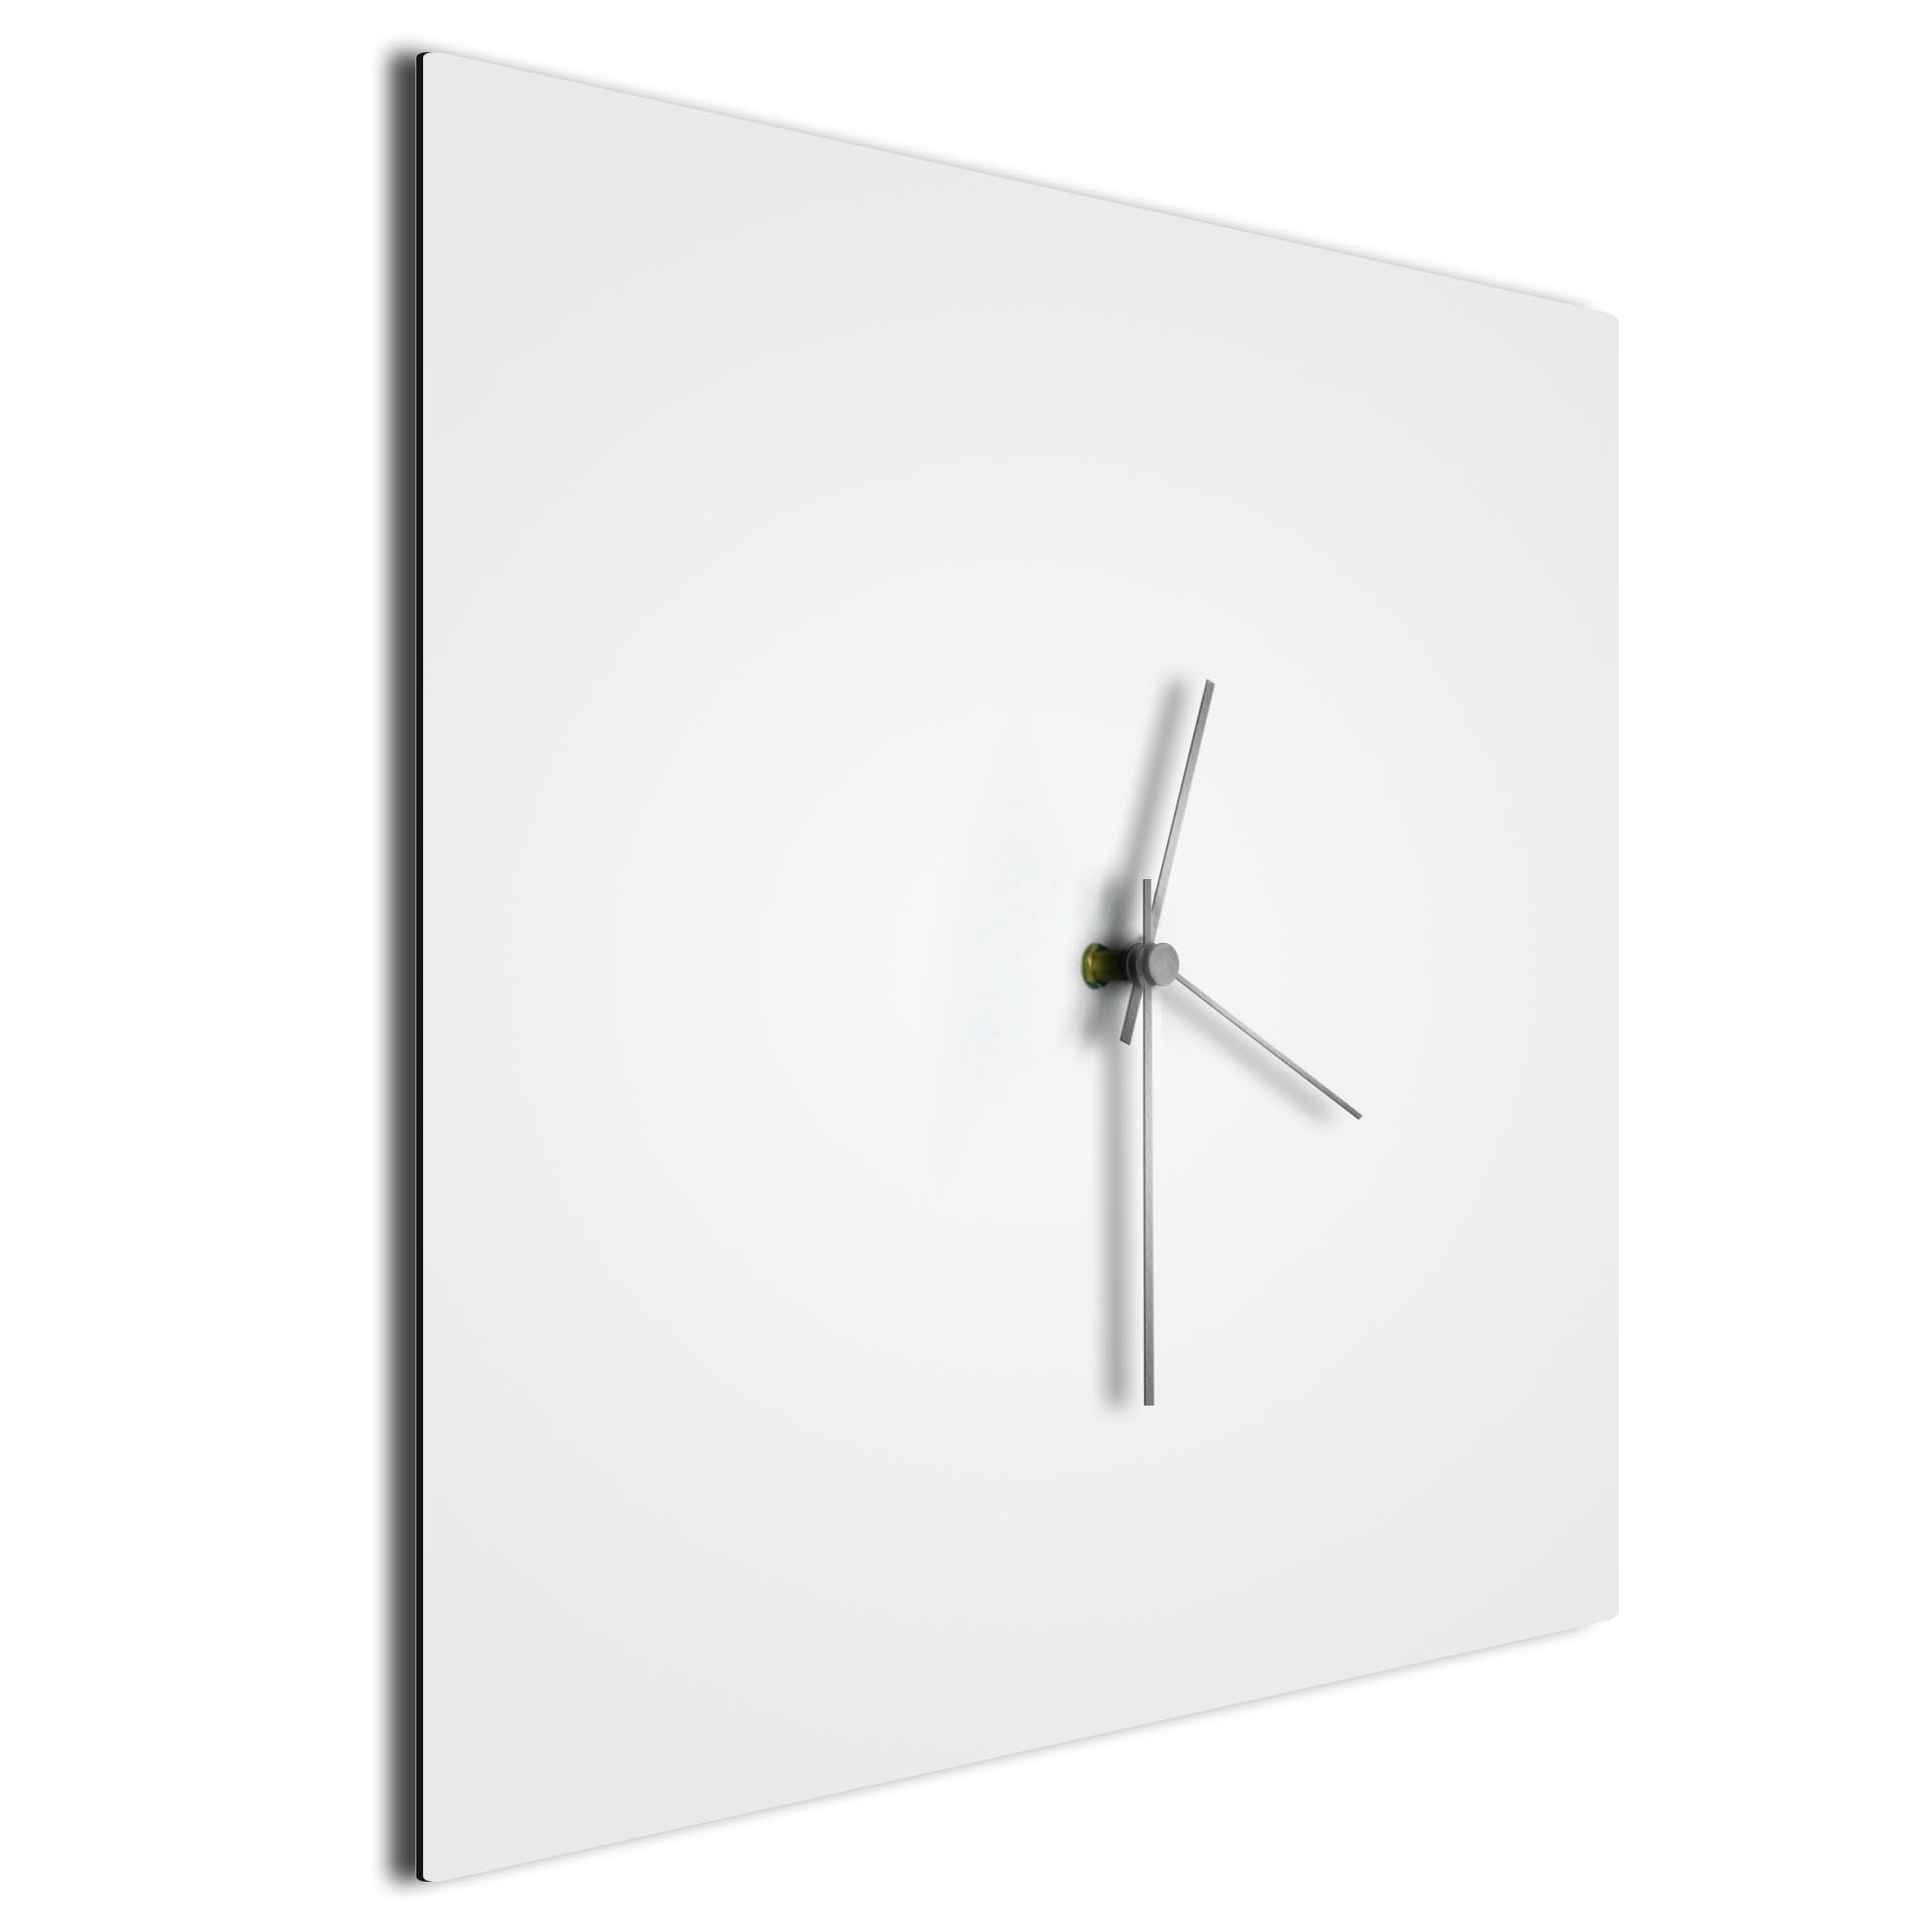 Whiteout Silver Square Clock Large - Image 2